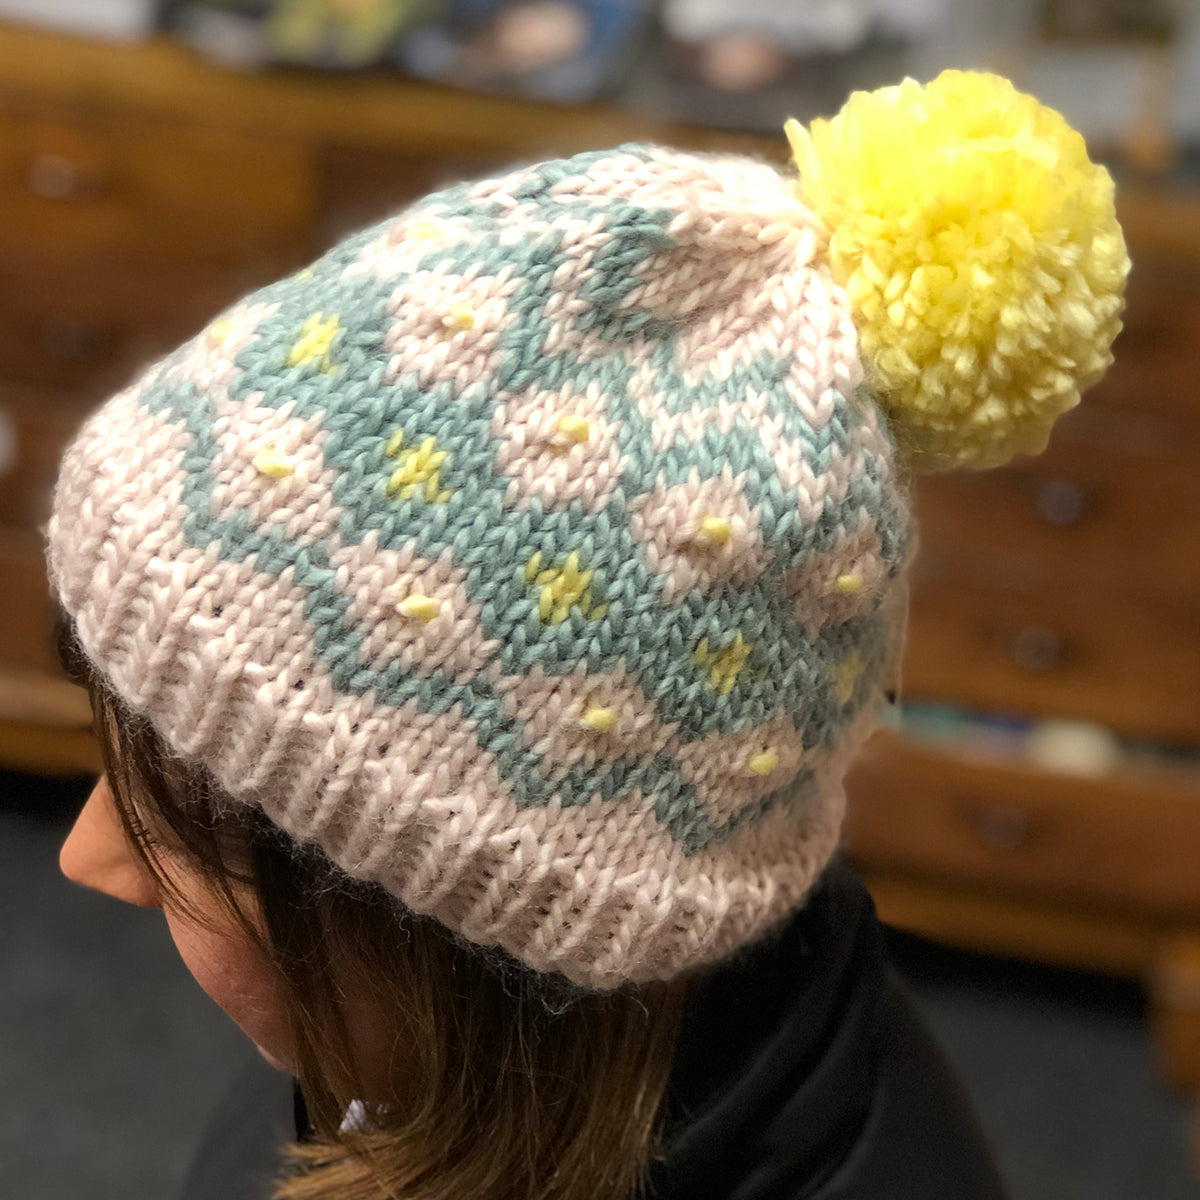 Hats, hats and more hats! Knit and crochet hats to make